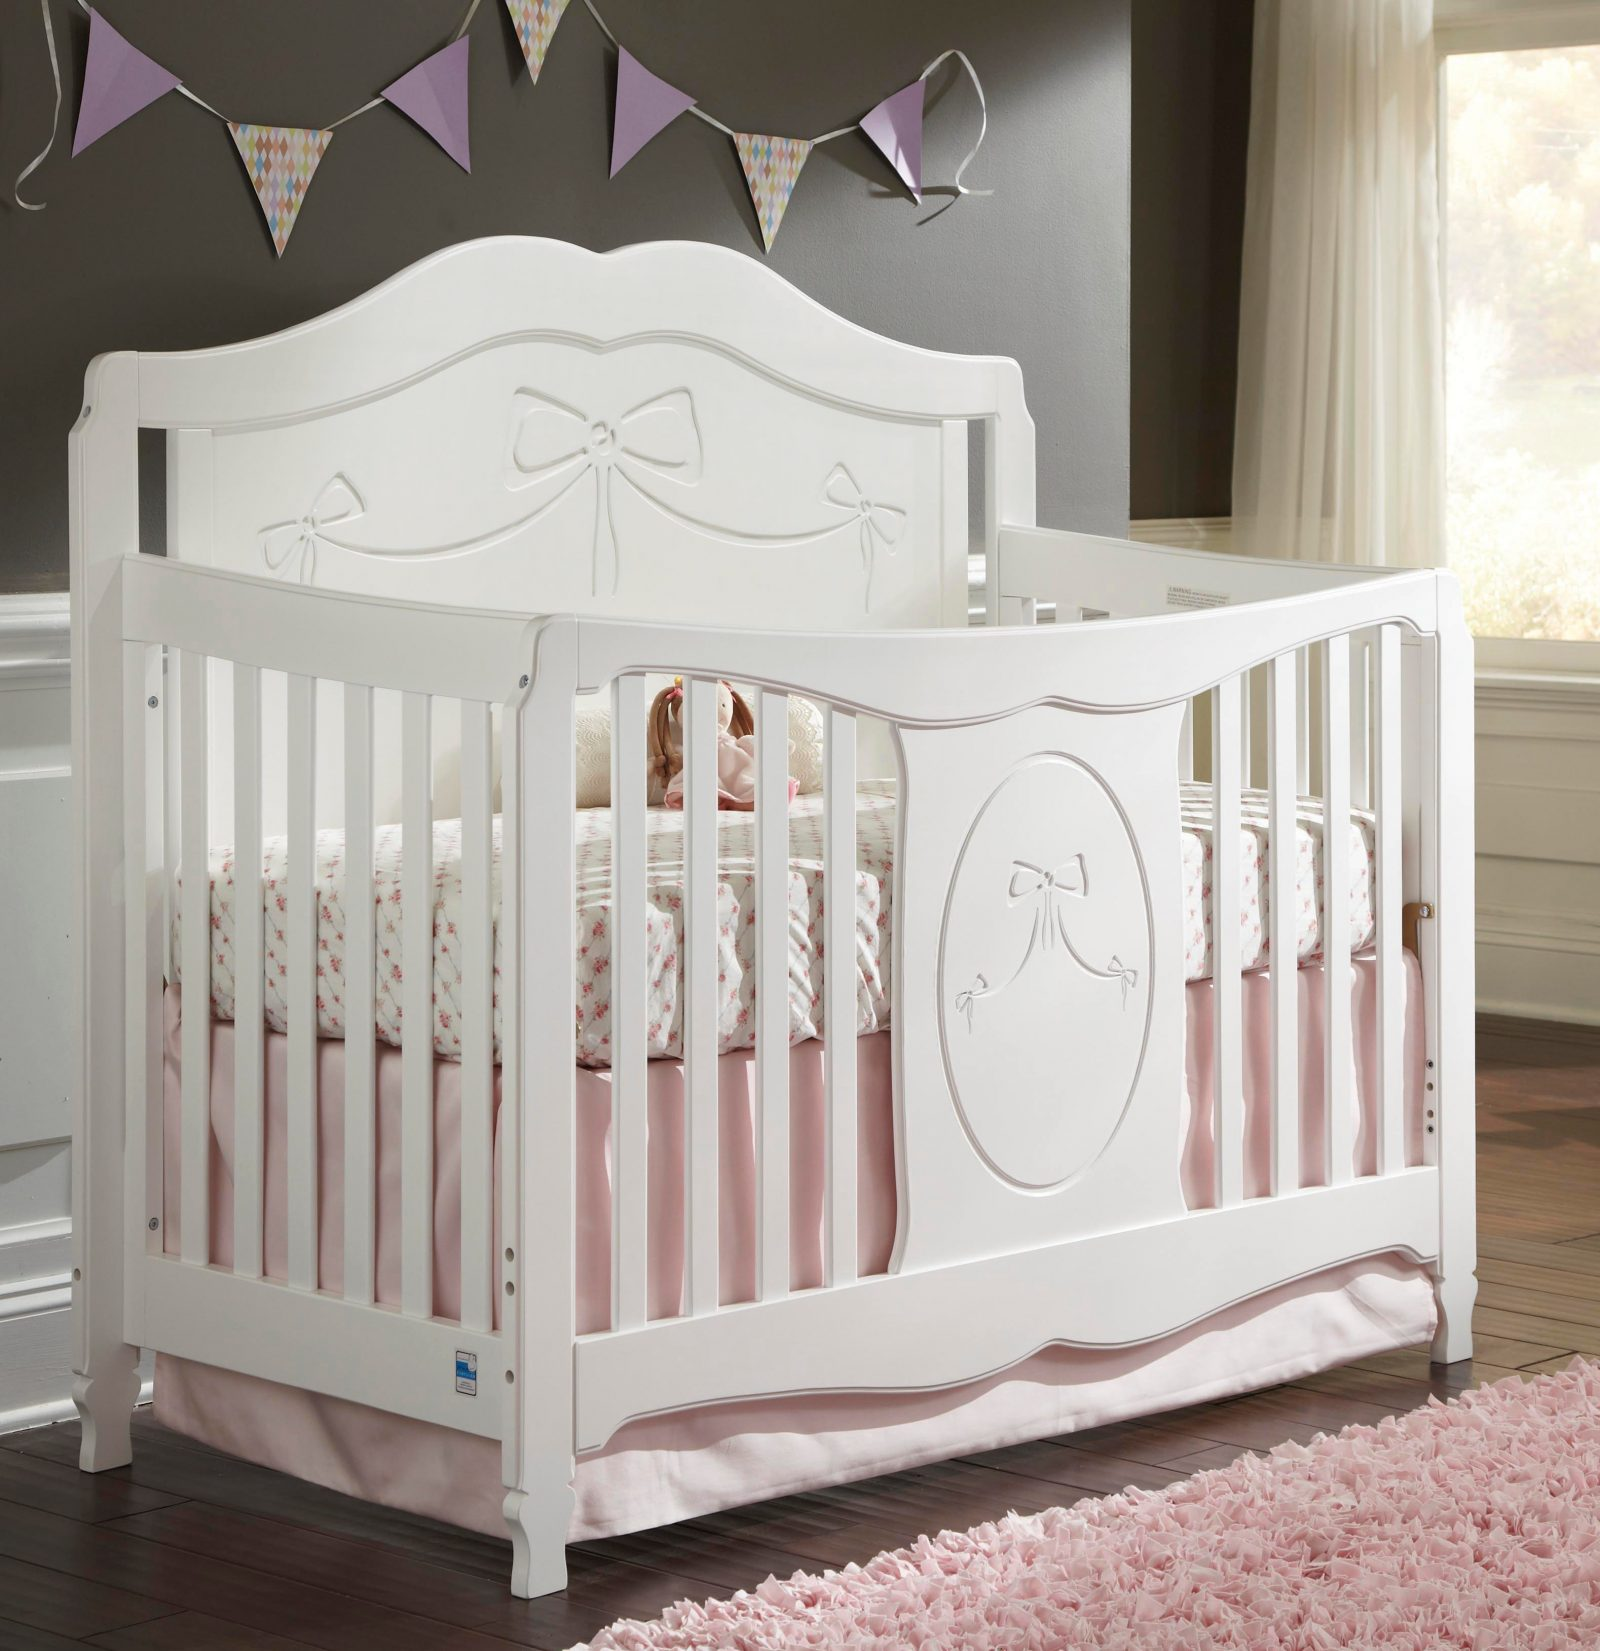 Storkcraft's Princess convertible crib grows with your child